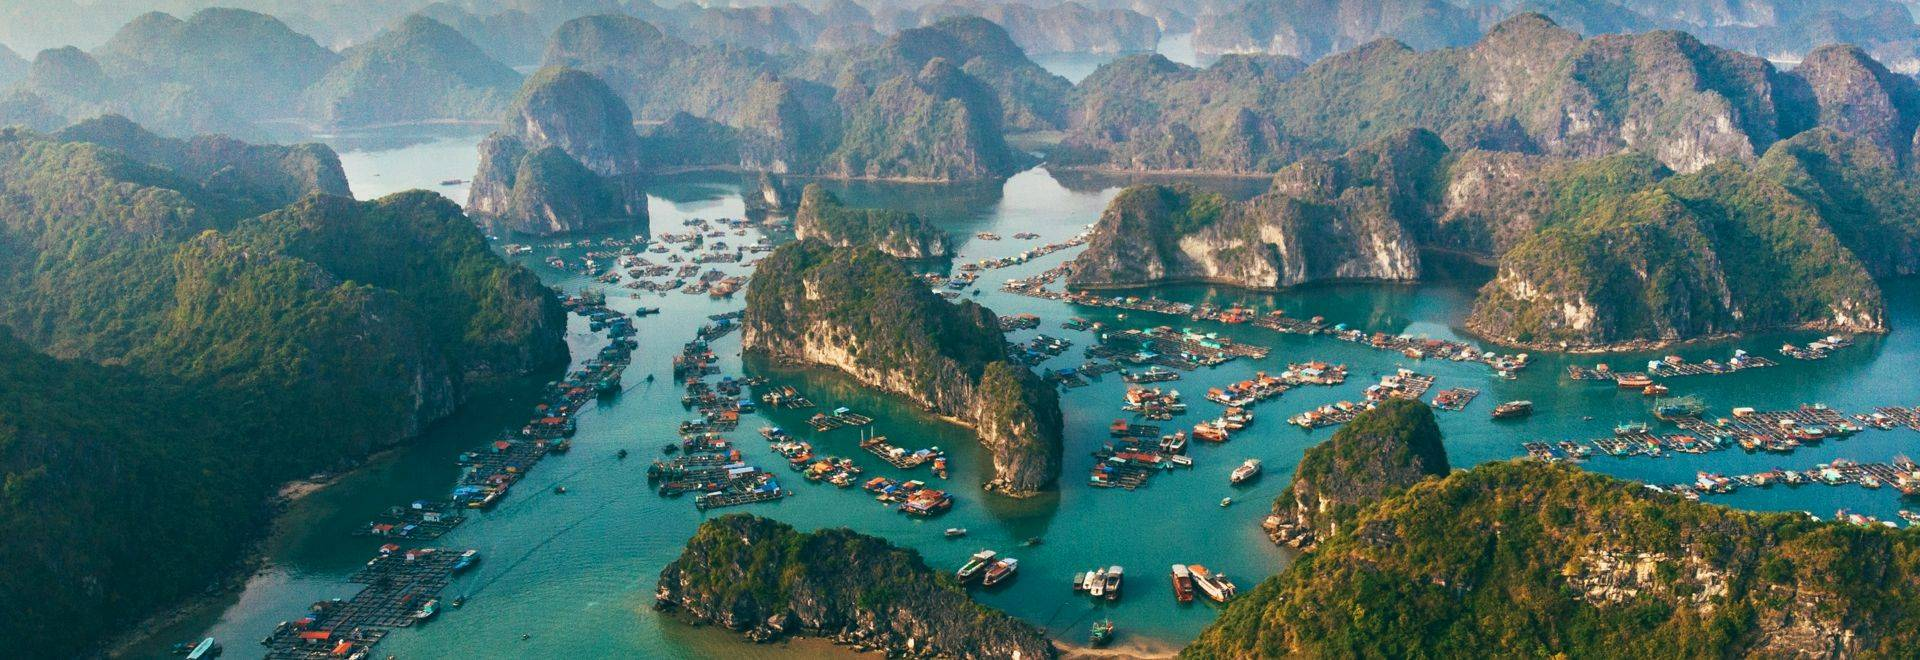 Scenic aerial view of Halong Bay in Vietnam  at sunset